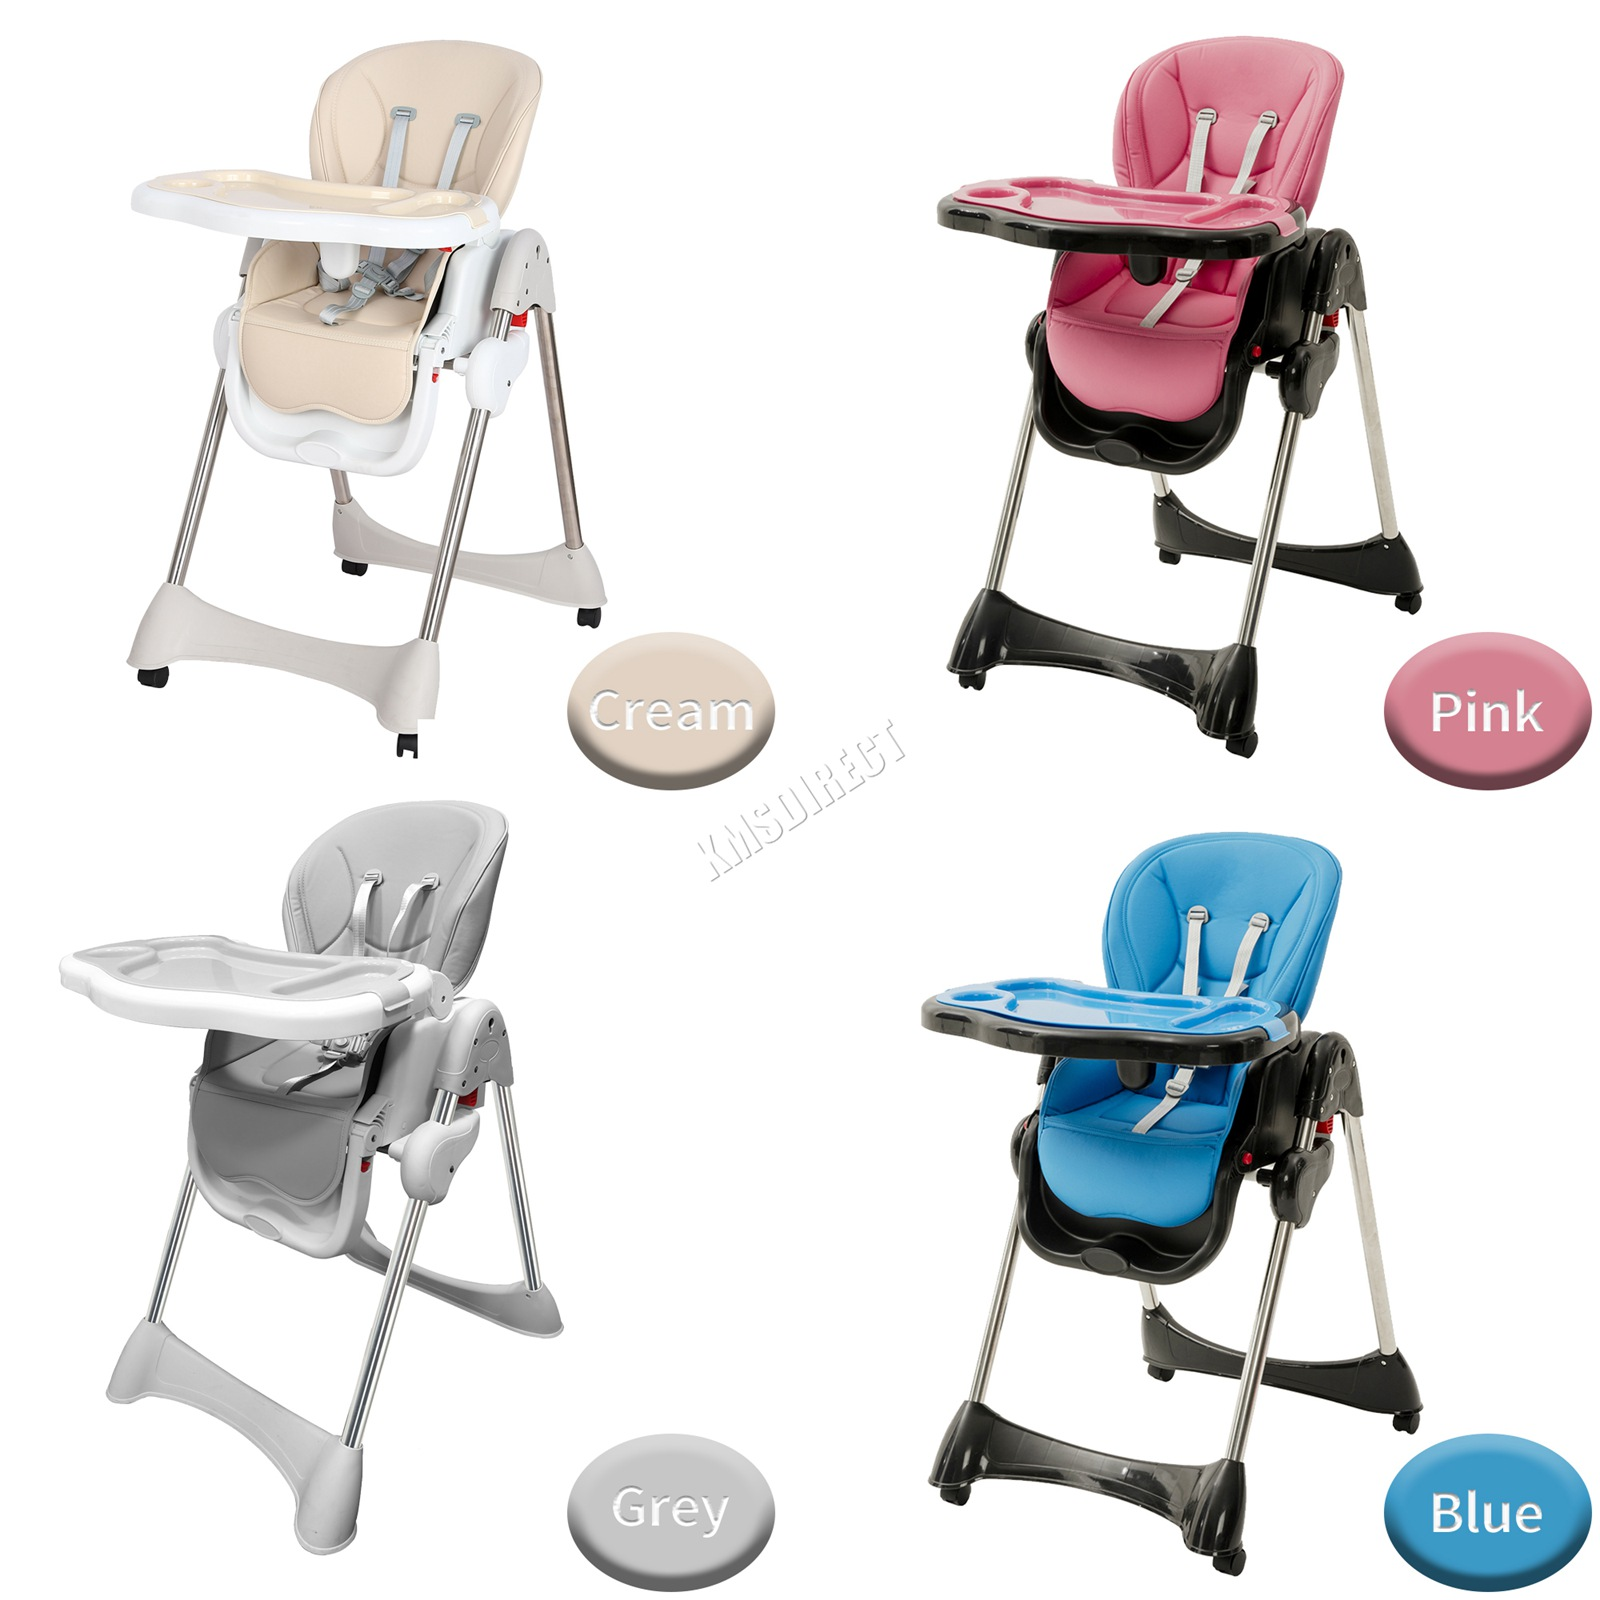 Details about GALACTICA Portable Baby High Chair Infant Soft Leather Feeding Nursery BHC04